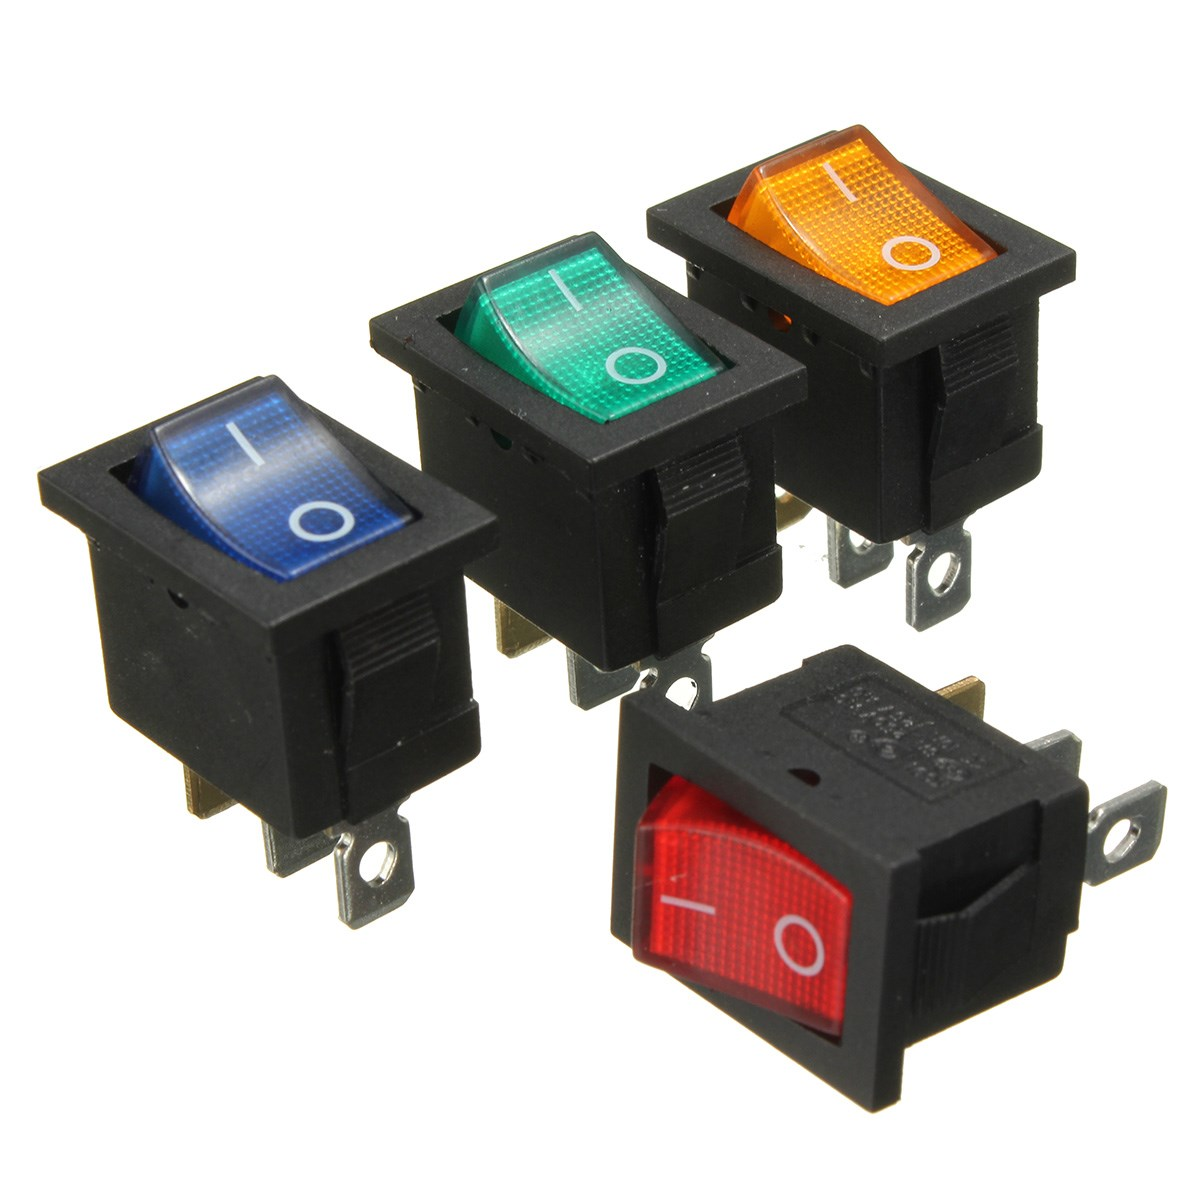 illuminated marine rocker switches ford 2000 tractor parts diagram 2015 new universal 3 pins on off switch w led